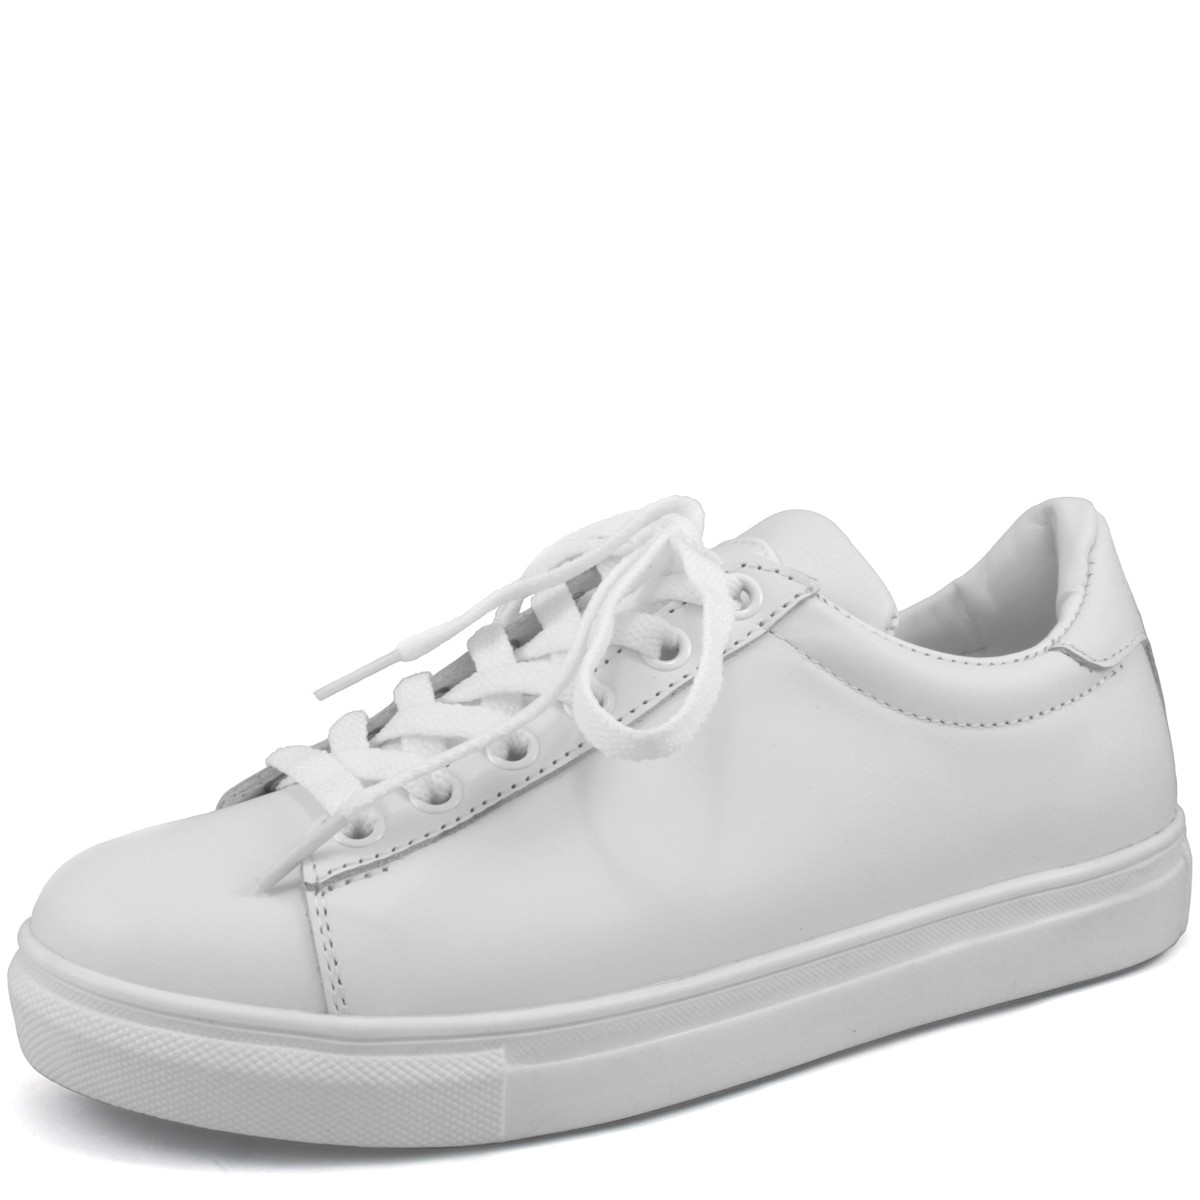 "SNEAKERS ""CLASSICA"" BIANCO"